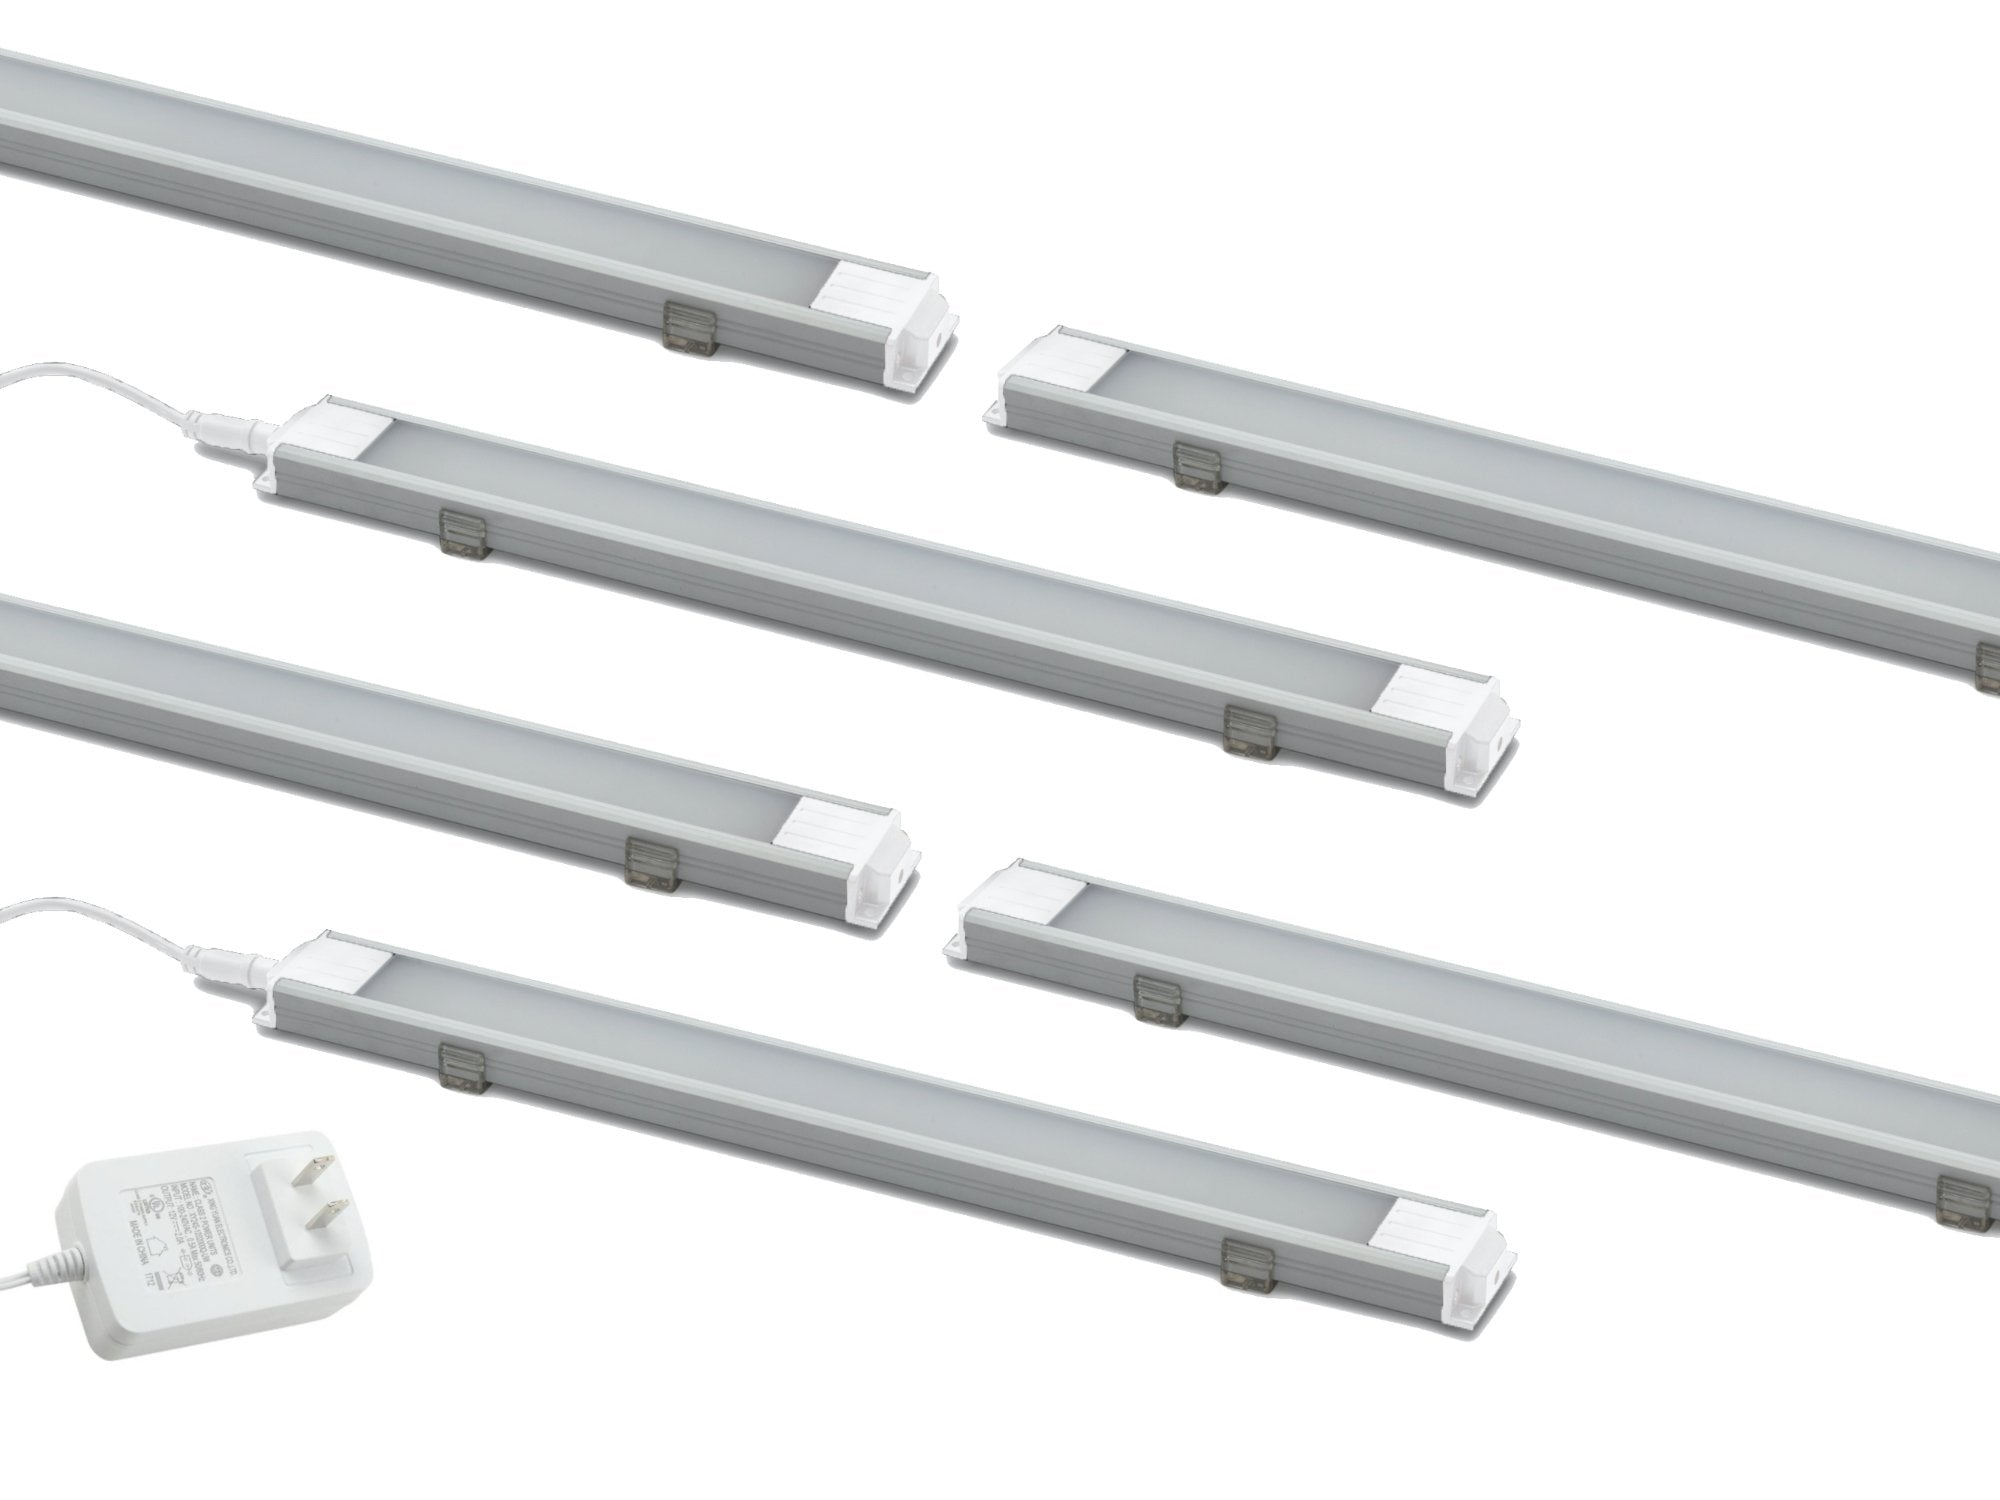 LED Display Lights (2 x Light Adapters, 4 x Light Extensions)